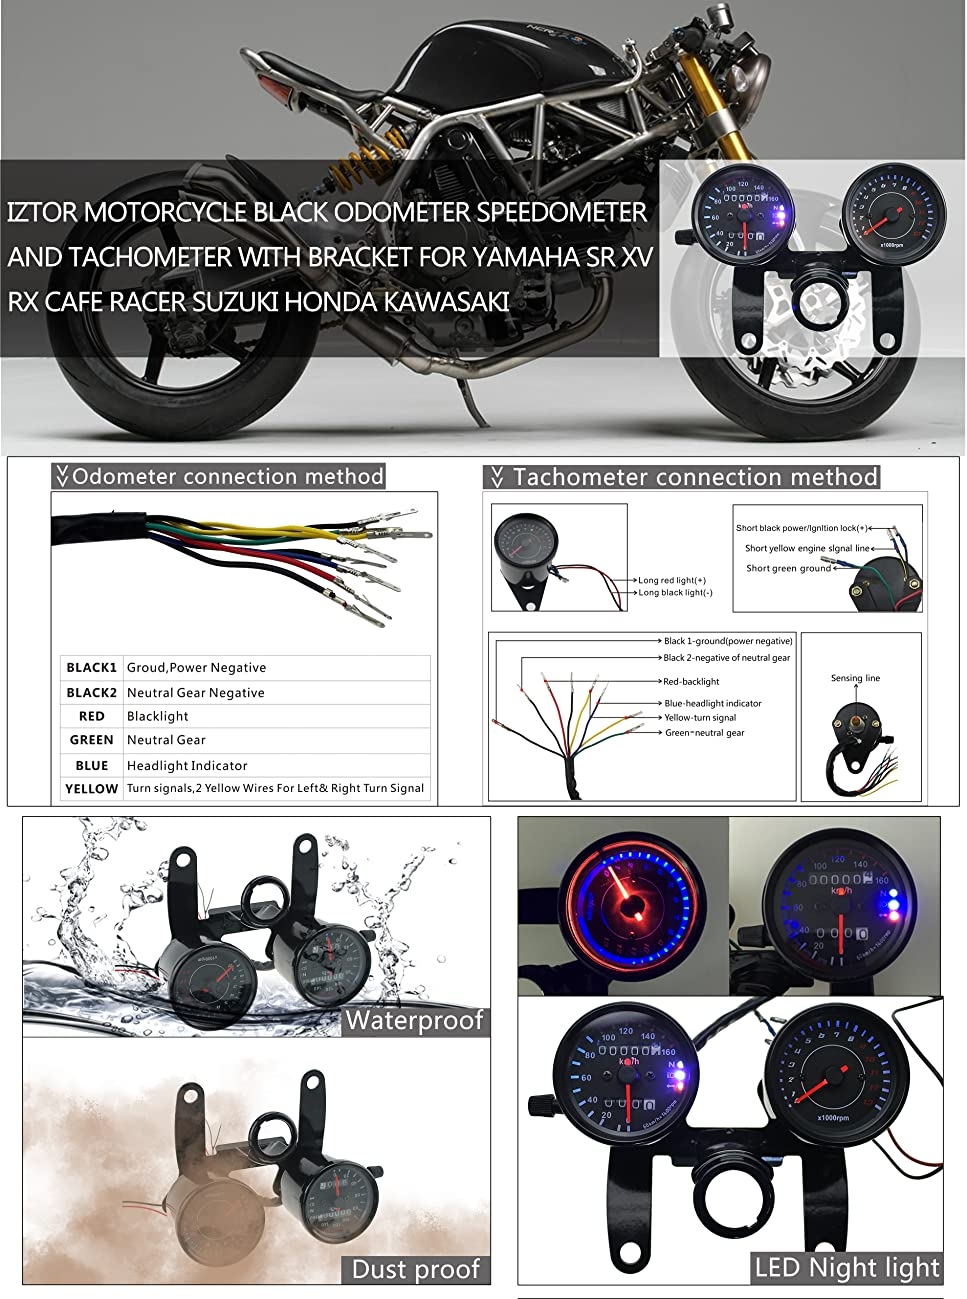 Iztor Motorcycle Black Odometer Speedometer And Wiring Diagram For Led Indicators Product Description